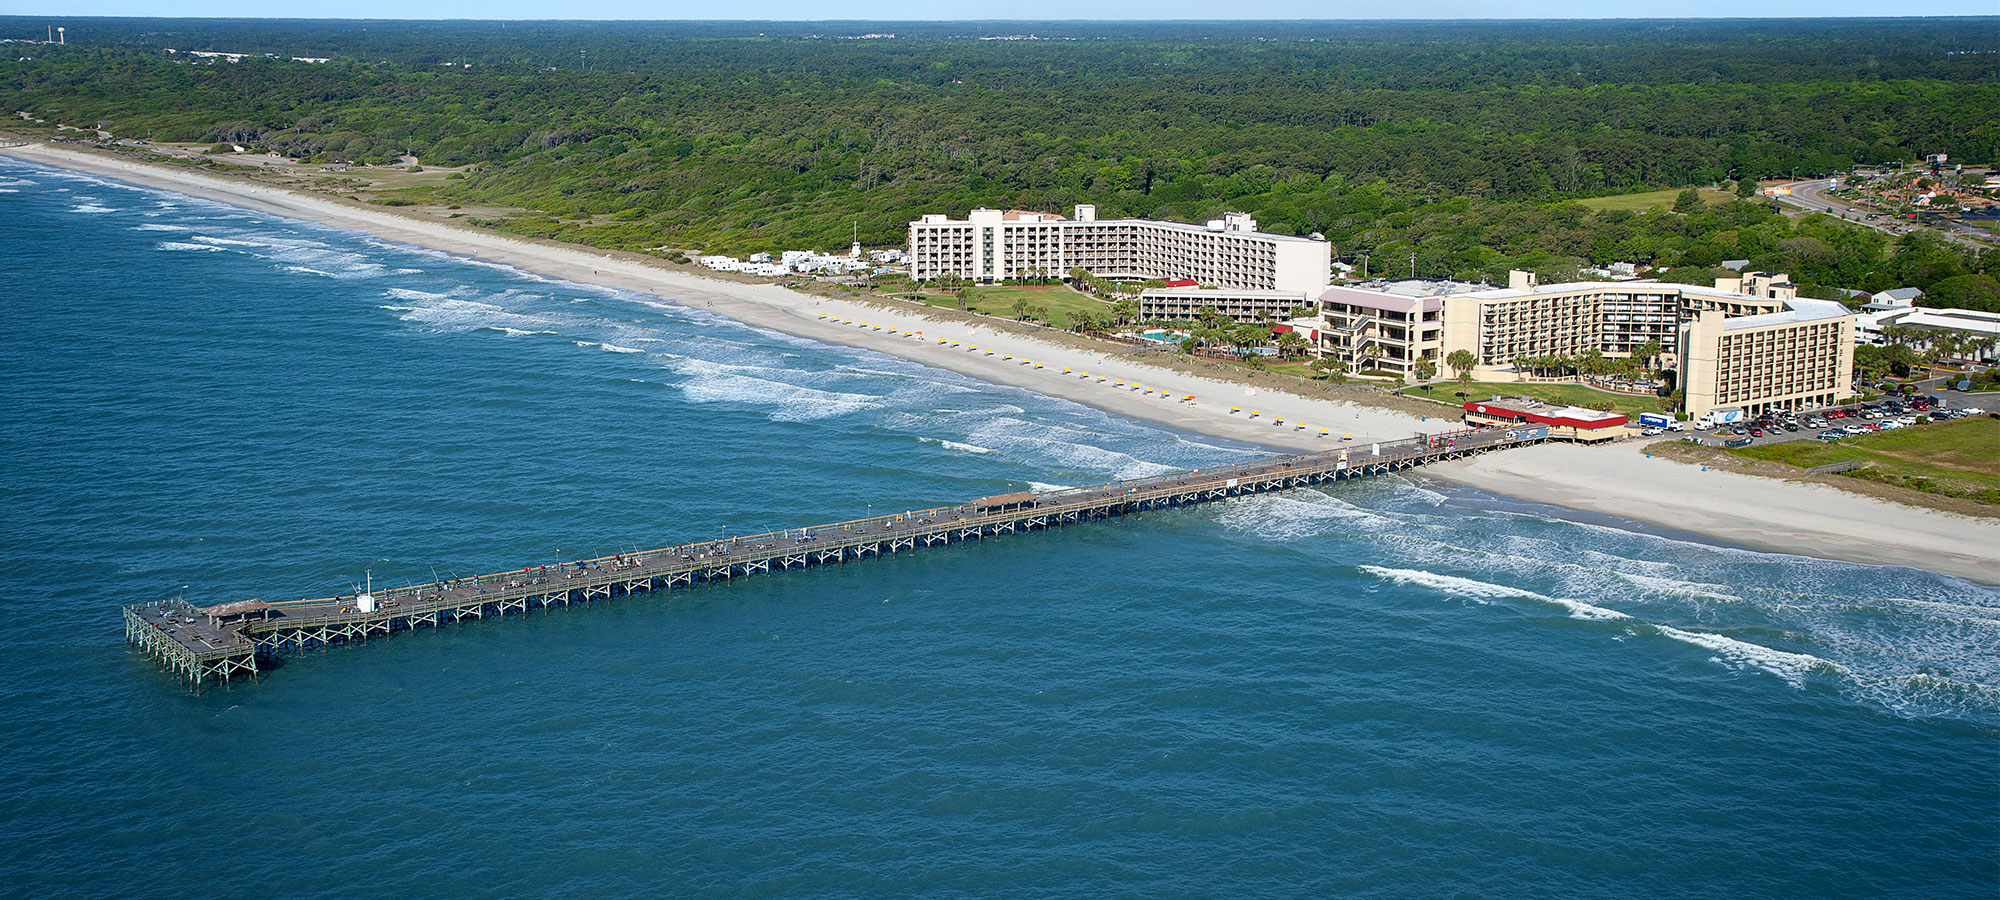 Springmaid beach resort and pier pond robinson associates for Fishing piers in myrtle beach